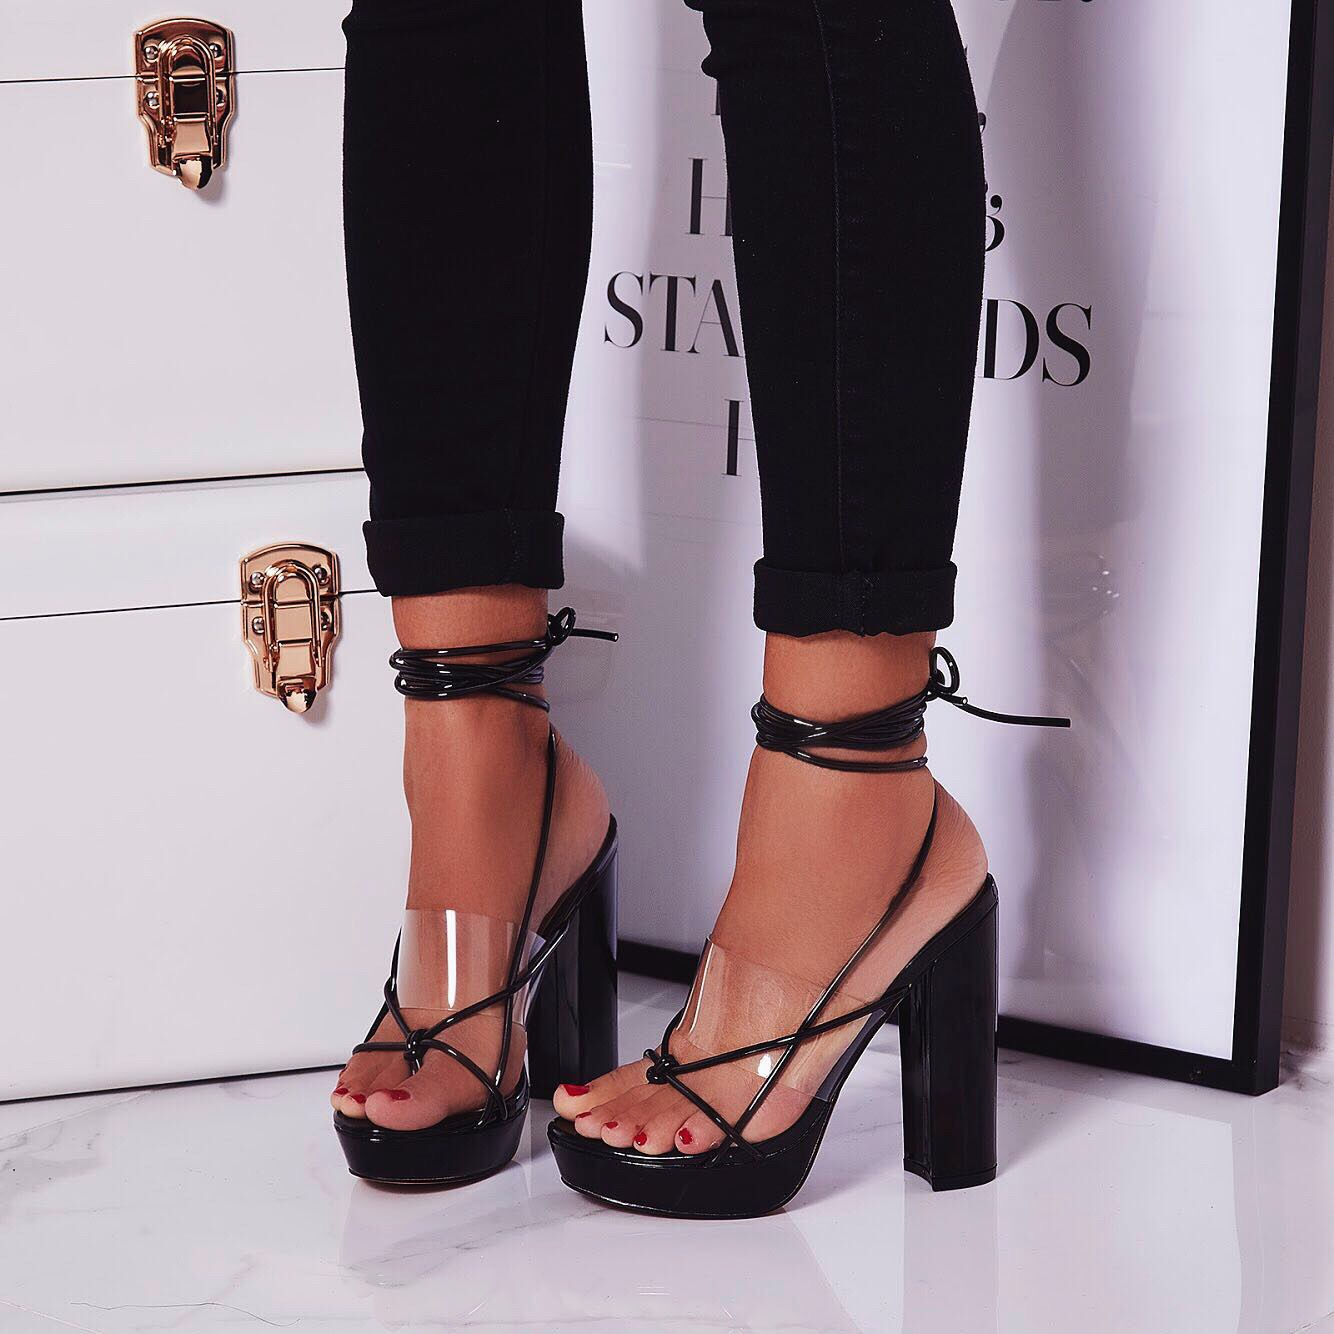 Jamie Lace Up Perspex Platform Heel In Black Patent